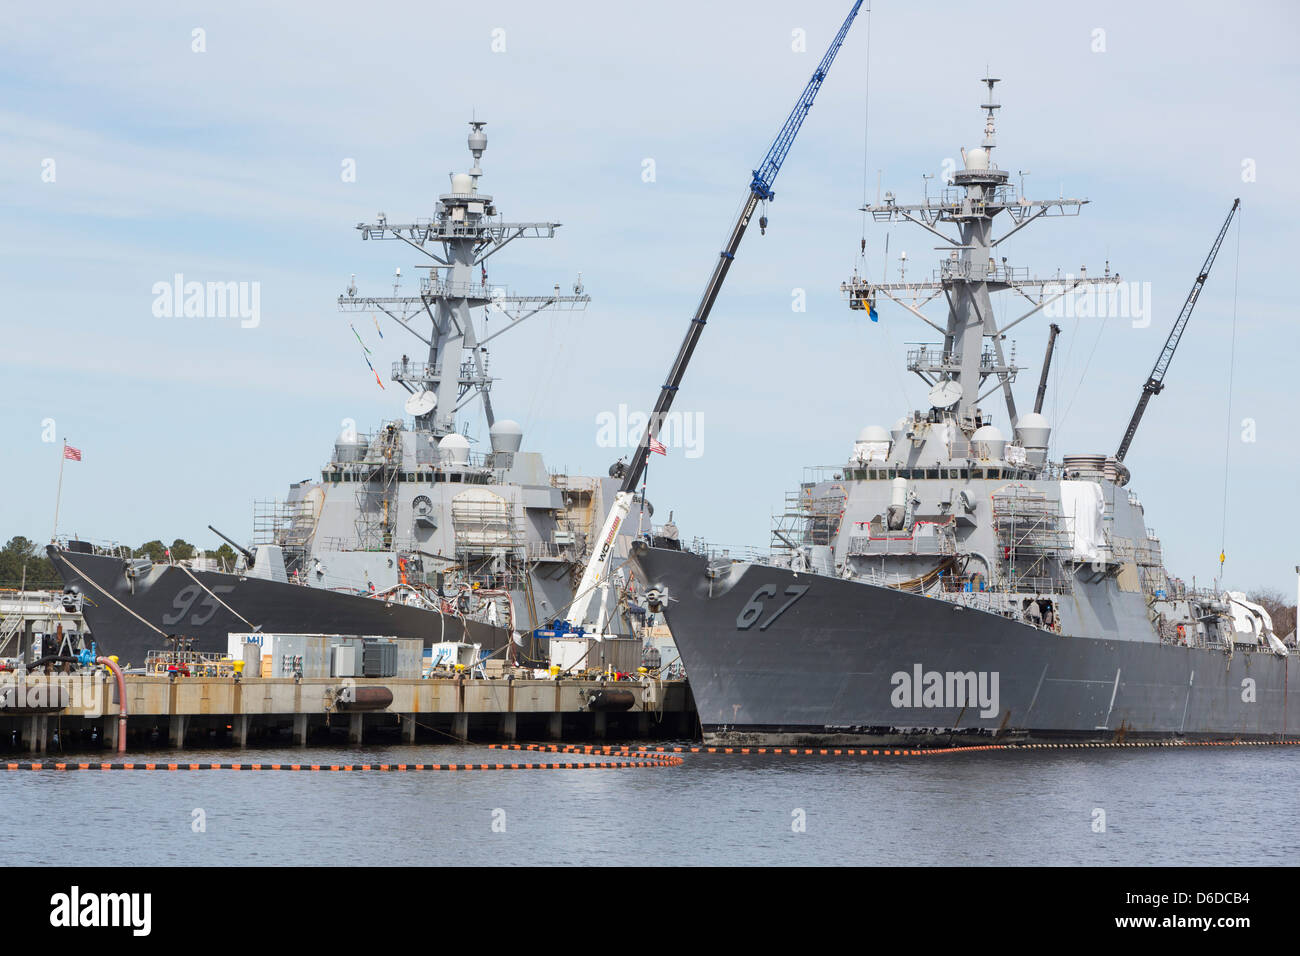 The Arleigh Burke Class destroyer USS Cole (DDG-67) in port at Naval Station Norfolk. - Stock Image